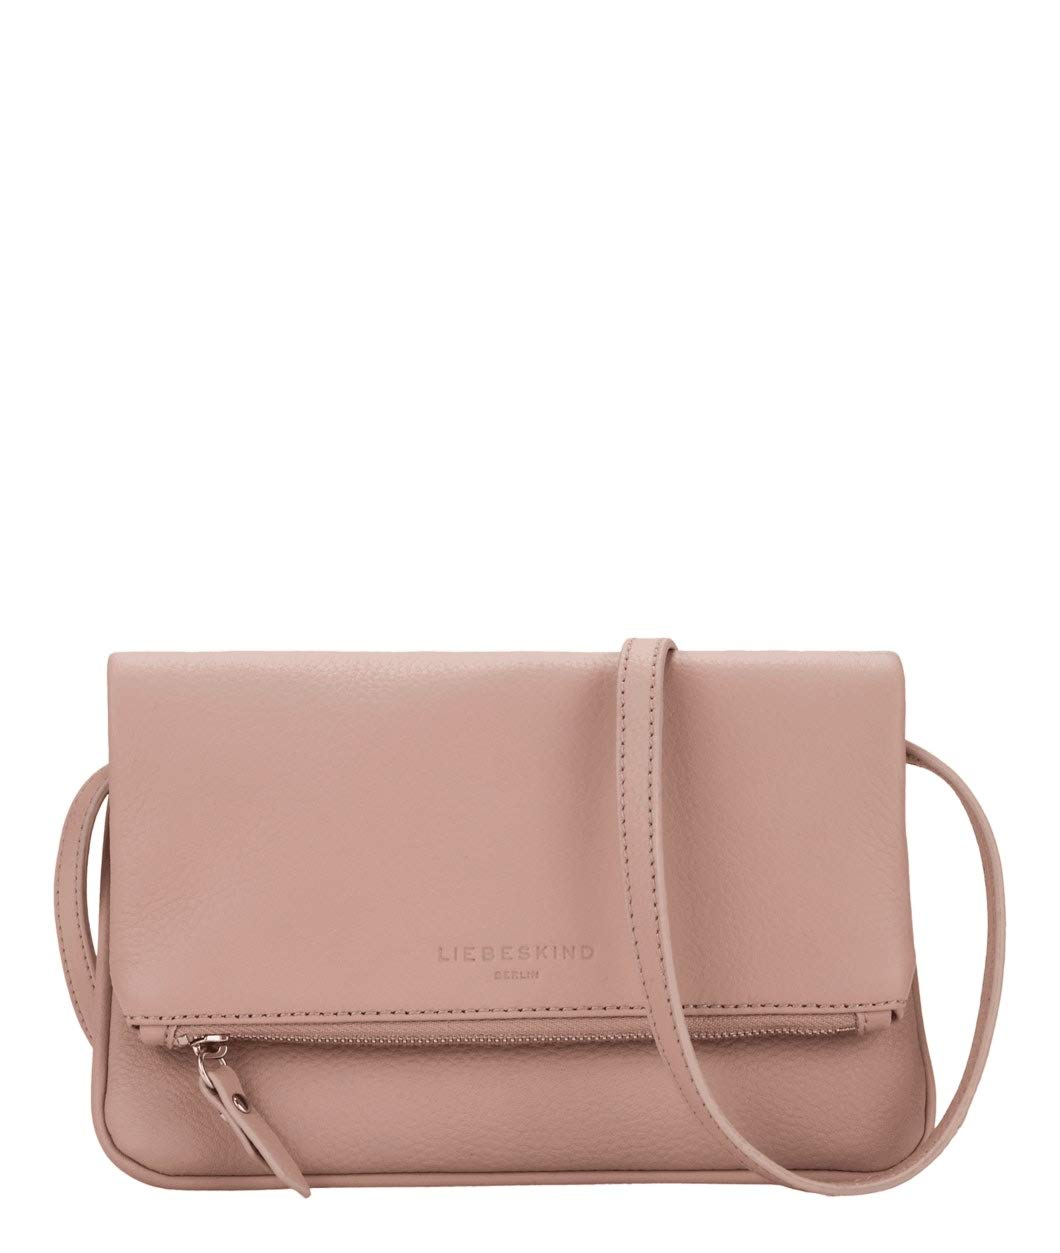 Liebeskind Berlin Aloe Crossbody Small